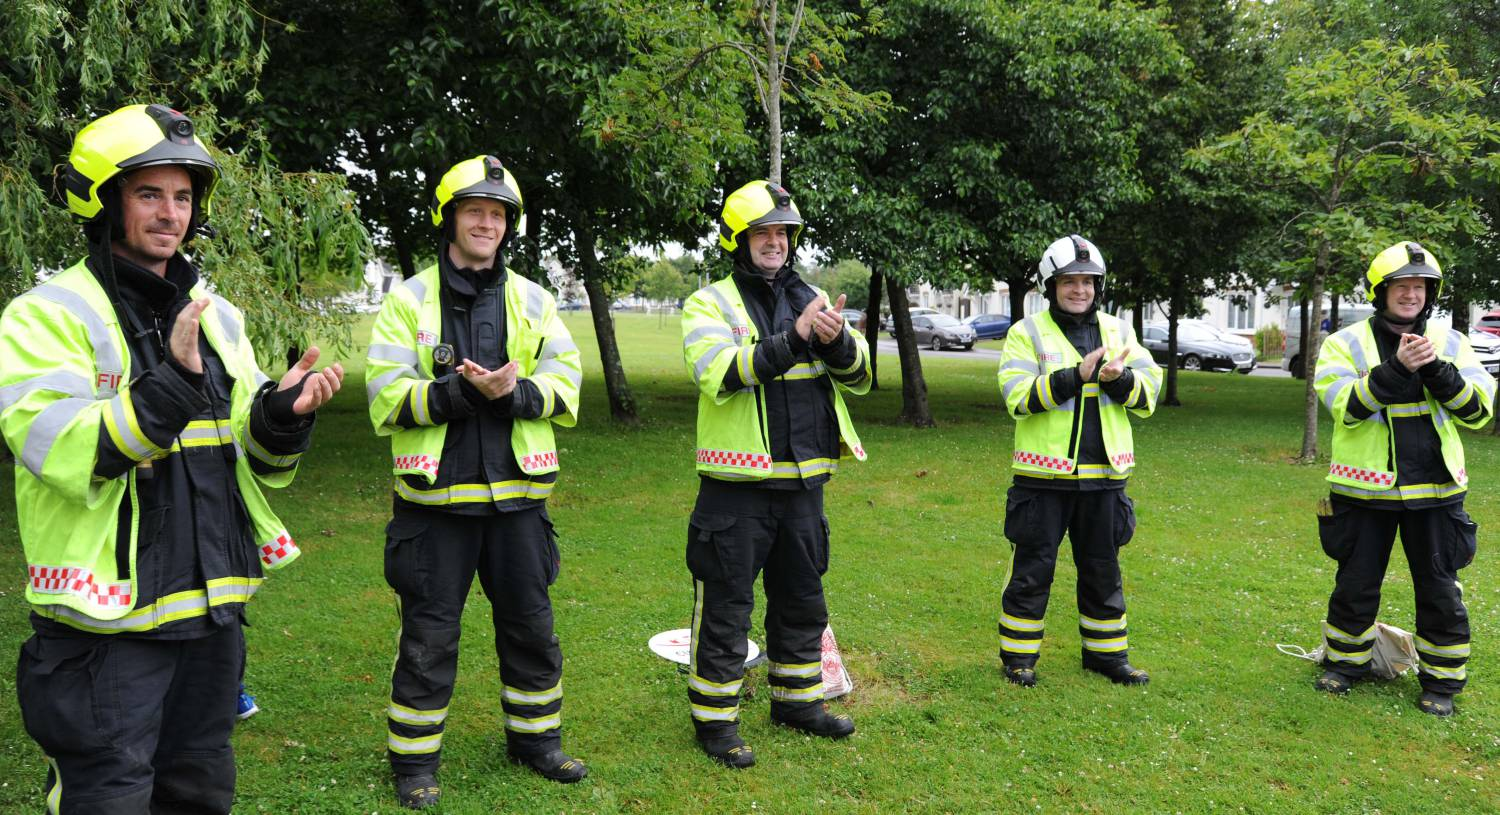 Firefighters from Ballincollig applauding as Oliver completed his 5,000m fundraising walk.